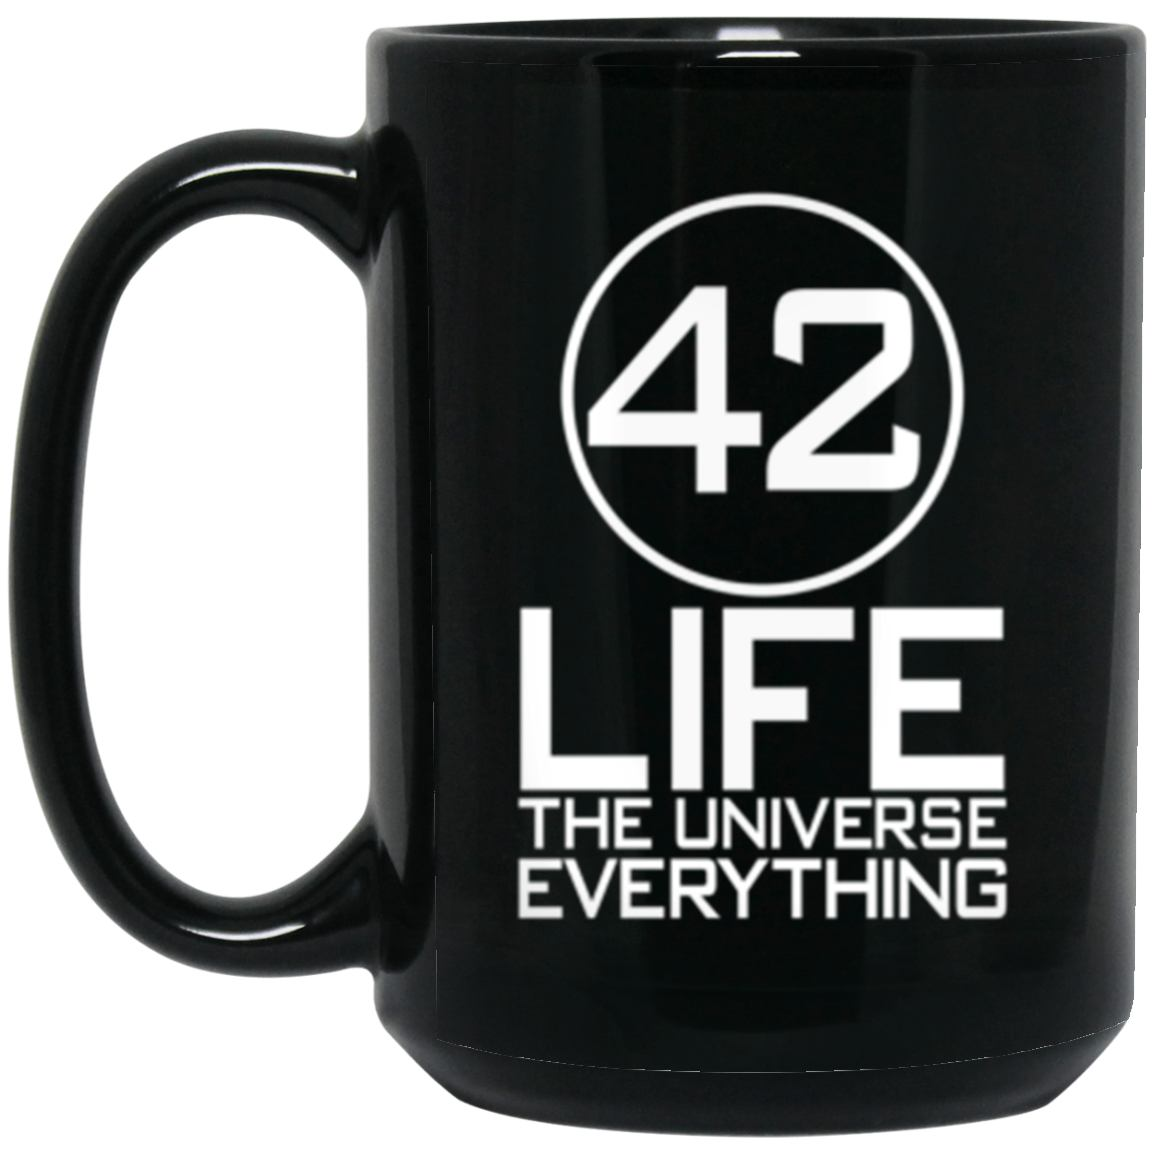 Drinkware - 42 Mug 15oz (2-sided)